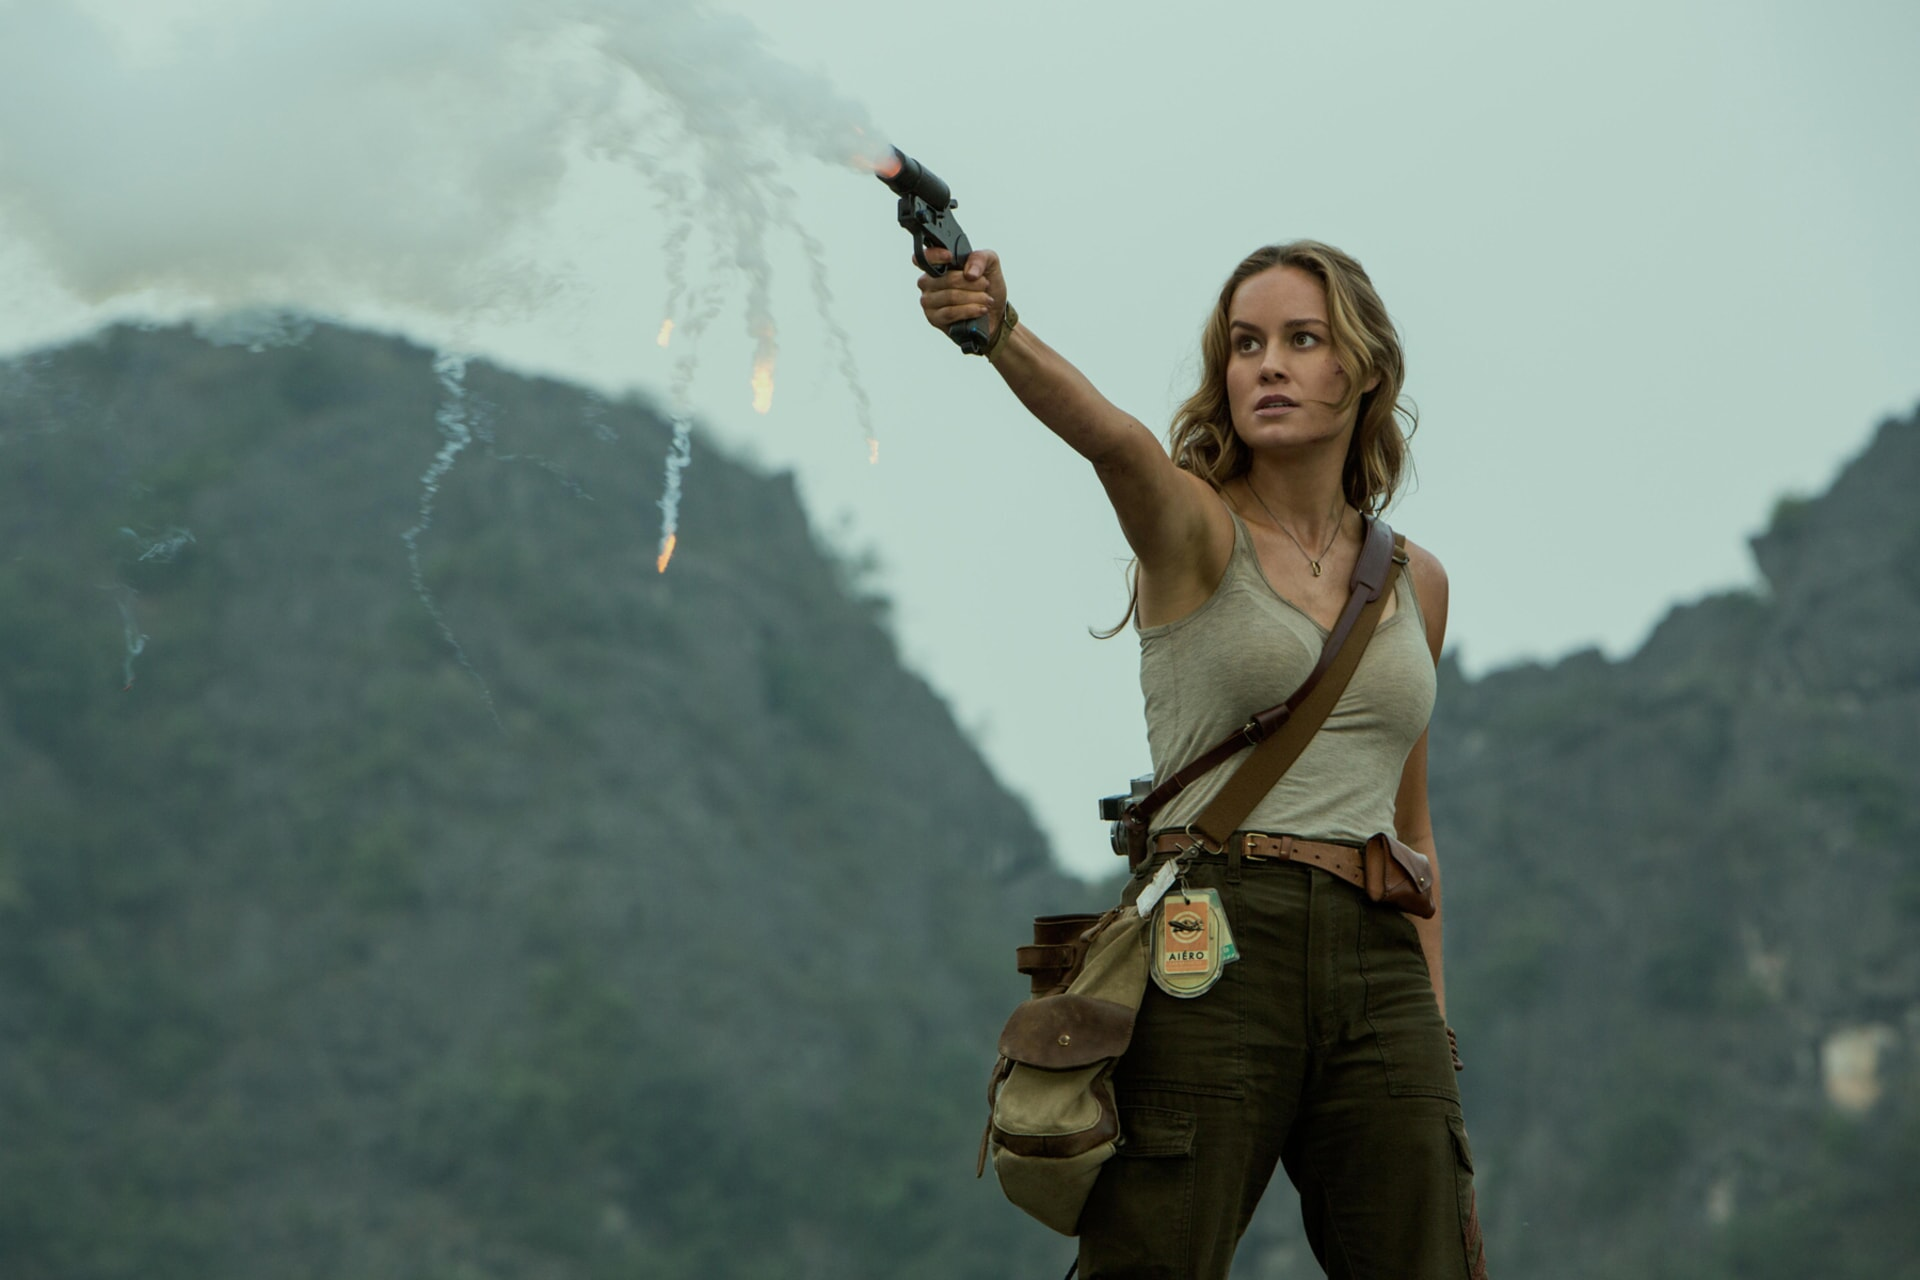 """BRIE LARSON as Mason Weaver in Warner Bros. Pictures', Legendary Pictures' and Tencent Pictures' action adventure """"KONG: SKULL ISLAND,"""" a Warner Bros. Pictures release."""